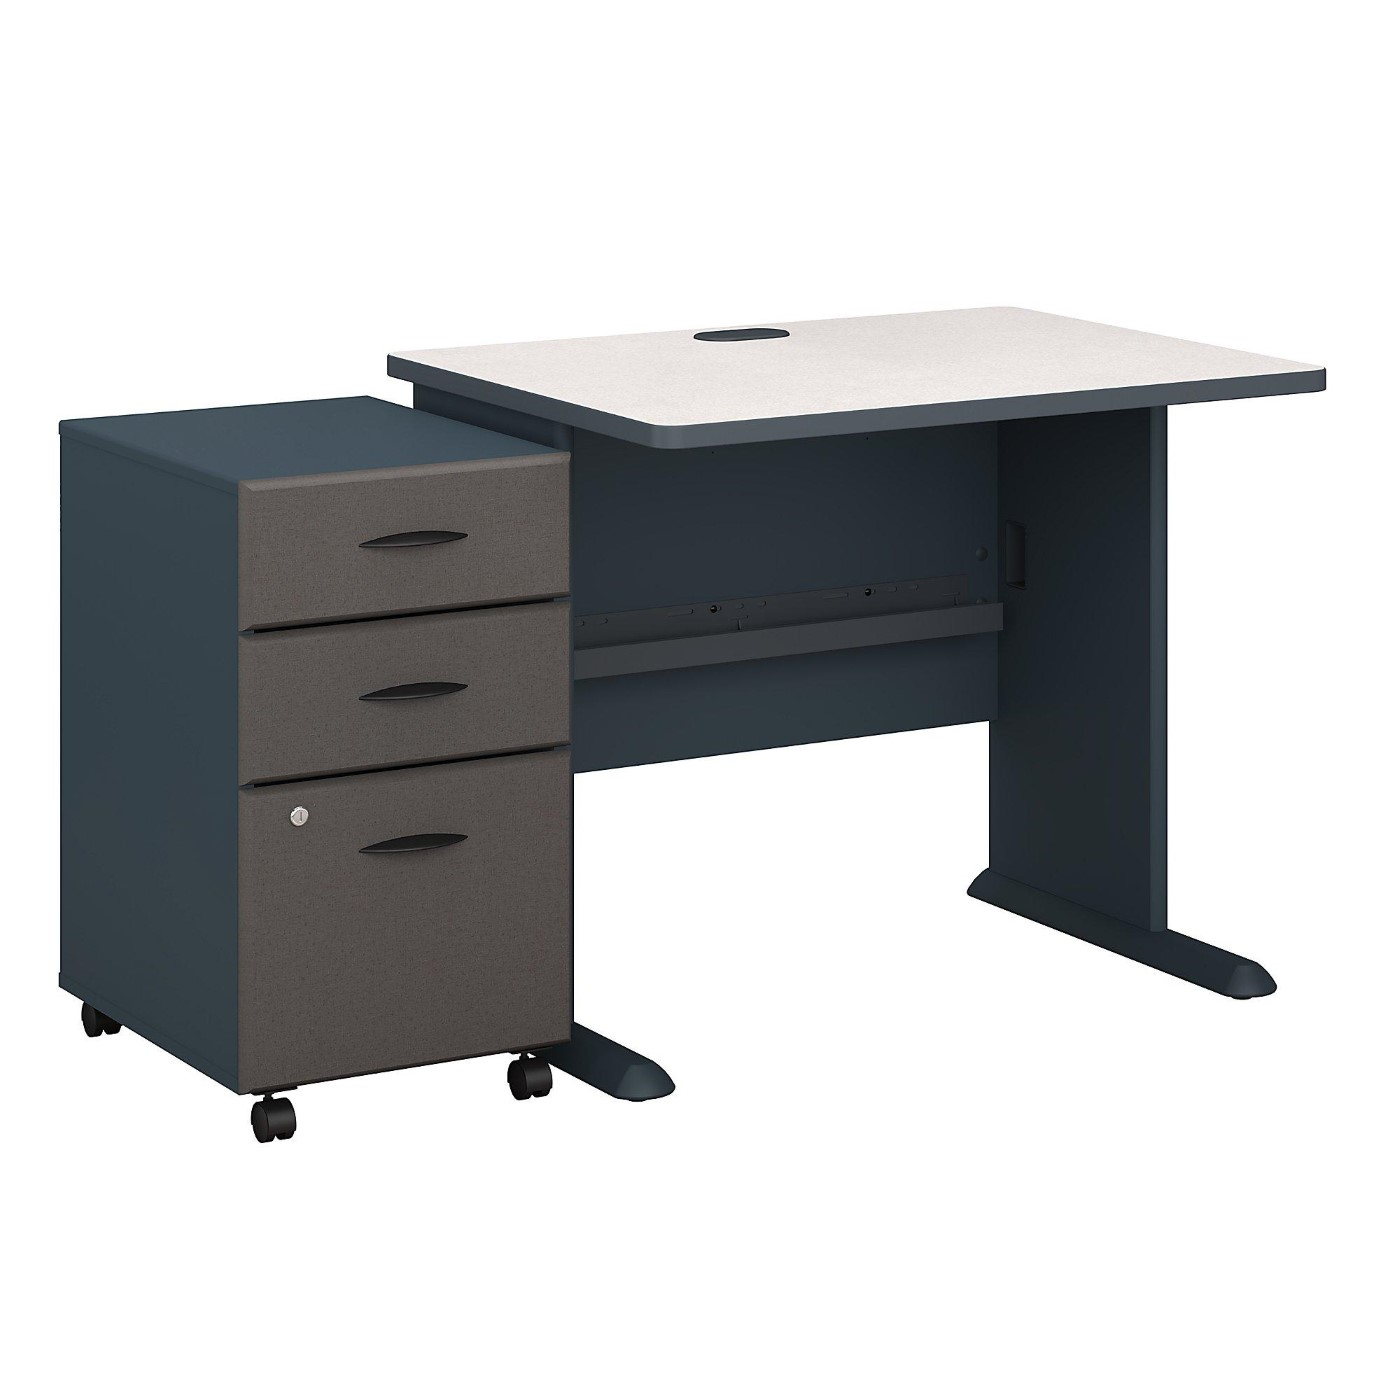 BUSH BUSINESS FURNITURE SERIES A 36W DESK WITH MOBILE FILE CABINET. FREE SHIPPING.  SALE DEDUCT 10% MORE ENTER '10percent' IN COUPON CODE BOX WHILE CHECKING OUT.